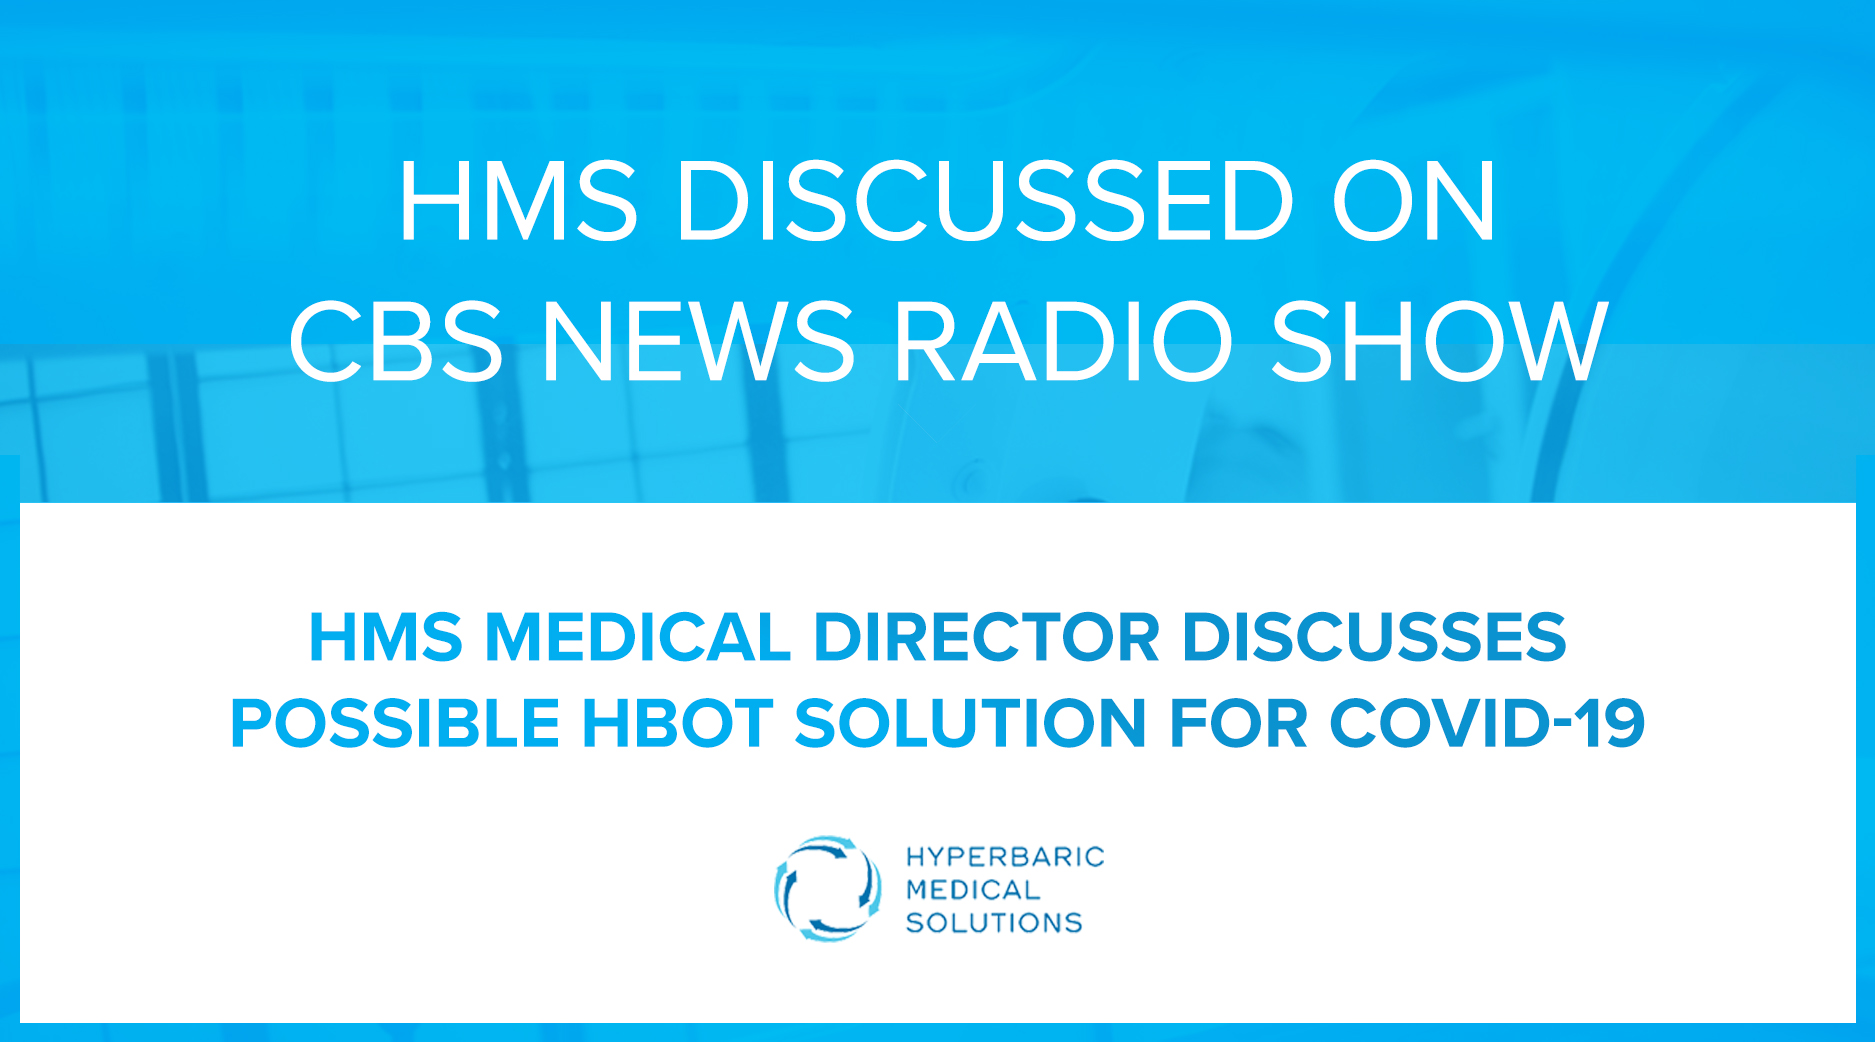 HMS Medical Director Discusses HBOT As Possible Solution For COVID-19 On CBS News Radio Show 'KNX In Depth'